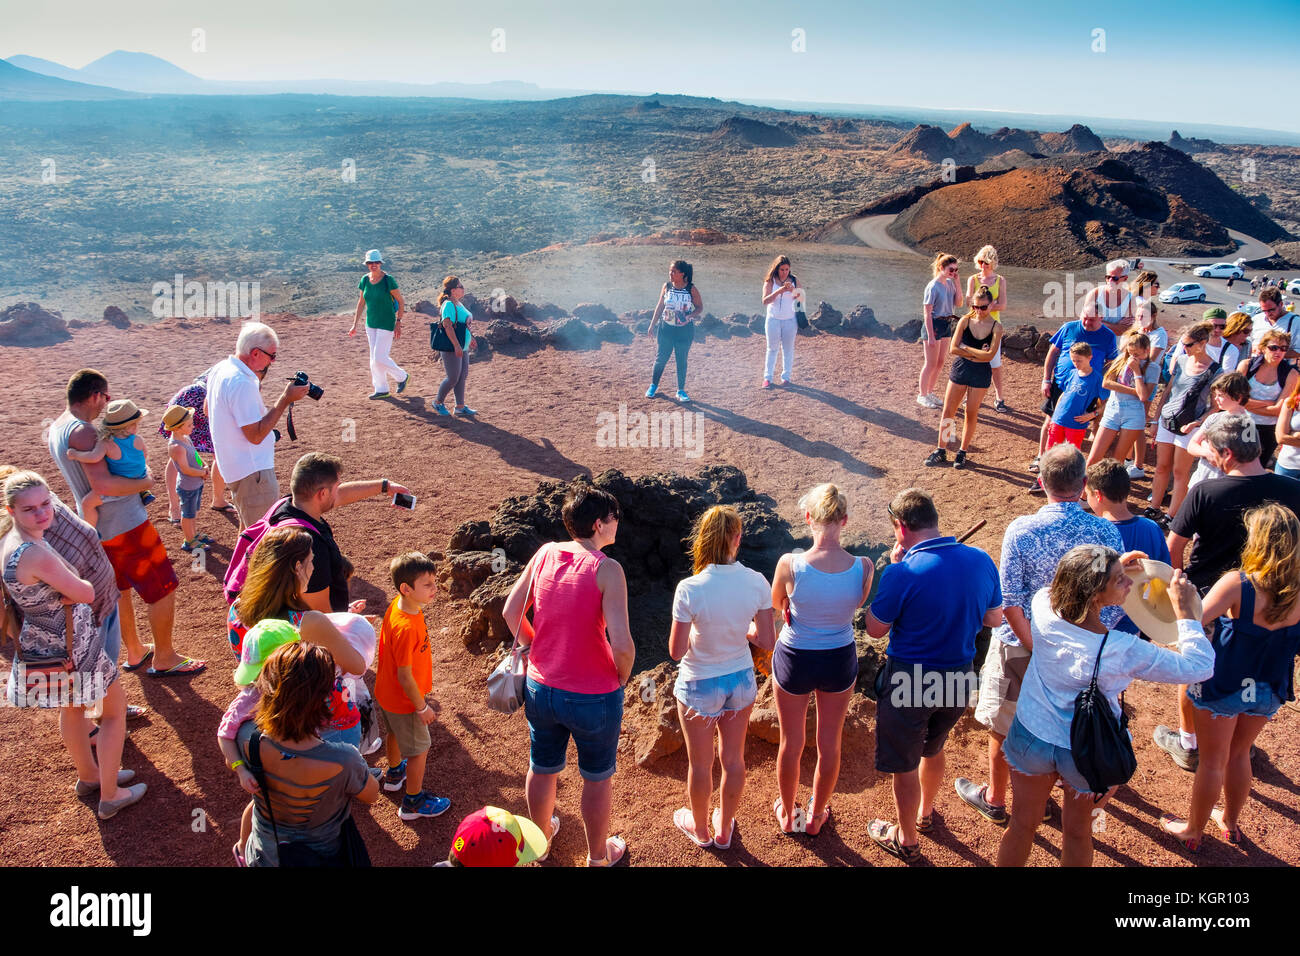 Demonstrations of volcanic activity on the Islet of Hilario. Timanfaya National Park. Lanzarote Island. Canary Islands - Stock Image